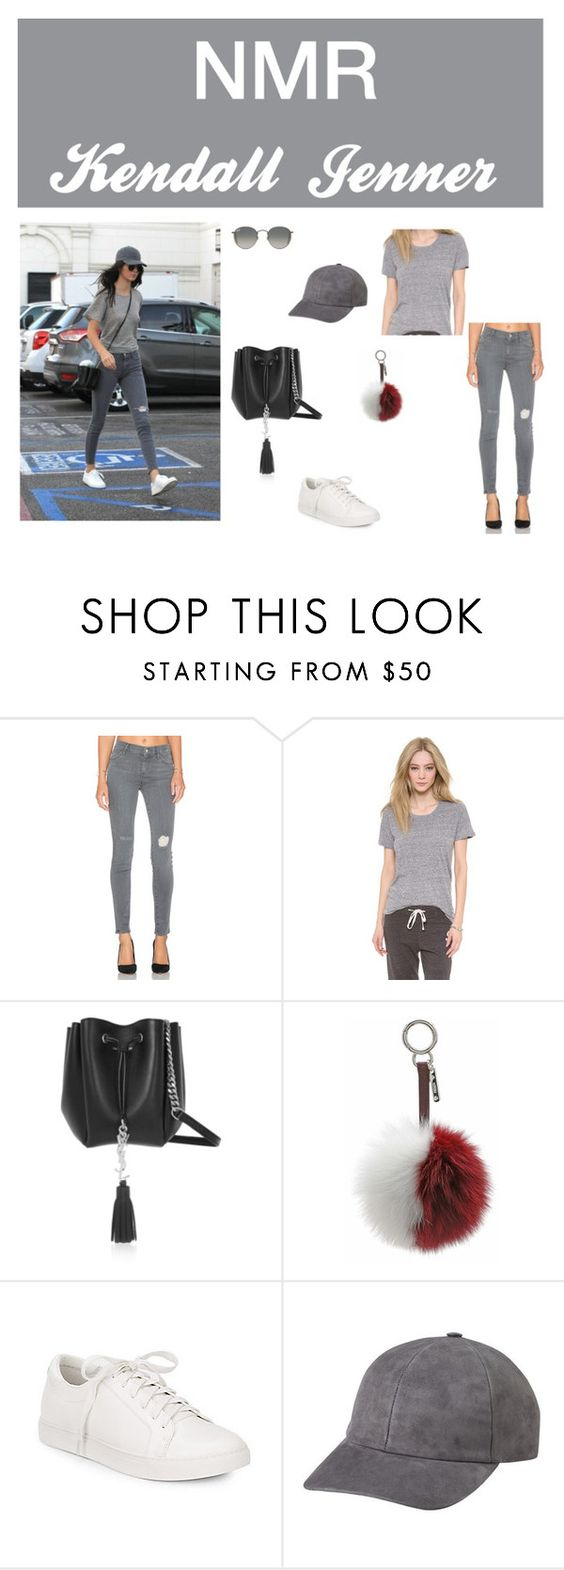 """""""Outfit #189"""" by nmr135 ❤ liked on Polyvore featuring Koral, Monrow, Yves Saint Laurent, Fendi, Kenneth Cole, Ray-Ban, kendalljenner and nmr"""